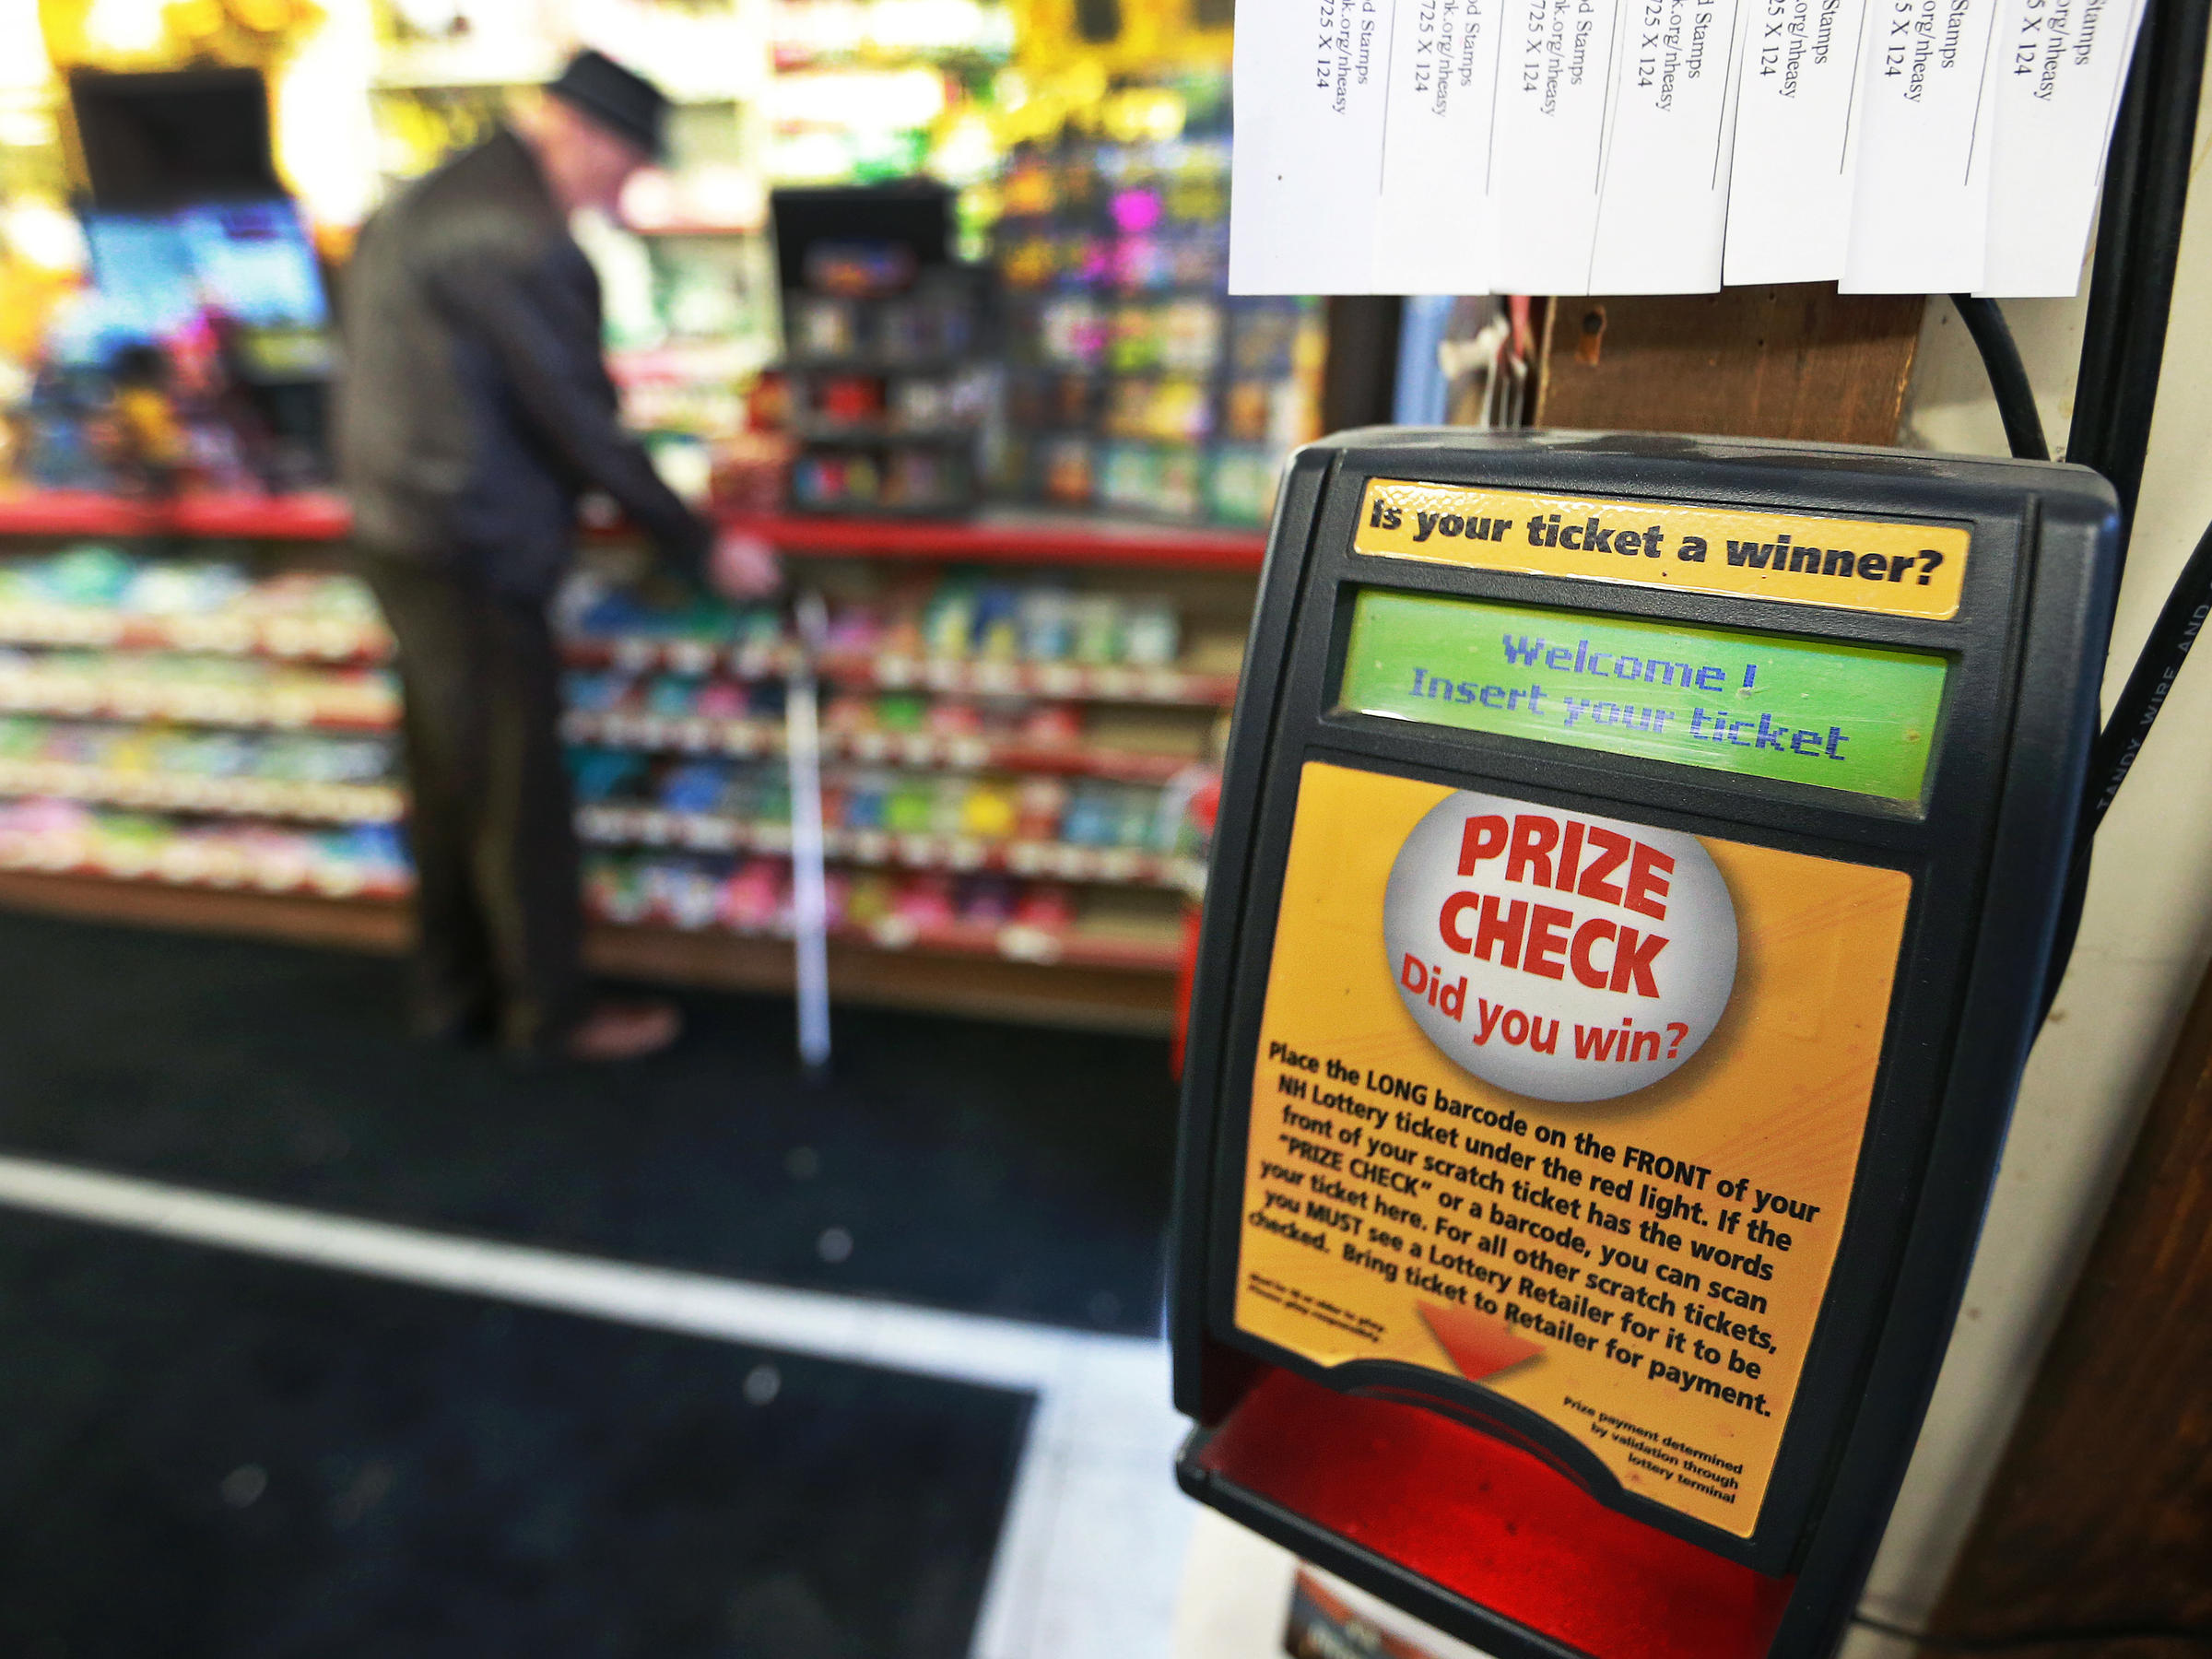 Lawyers for Powerball victor to claim $559M prize